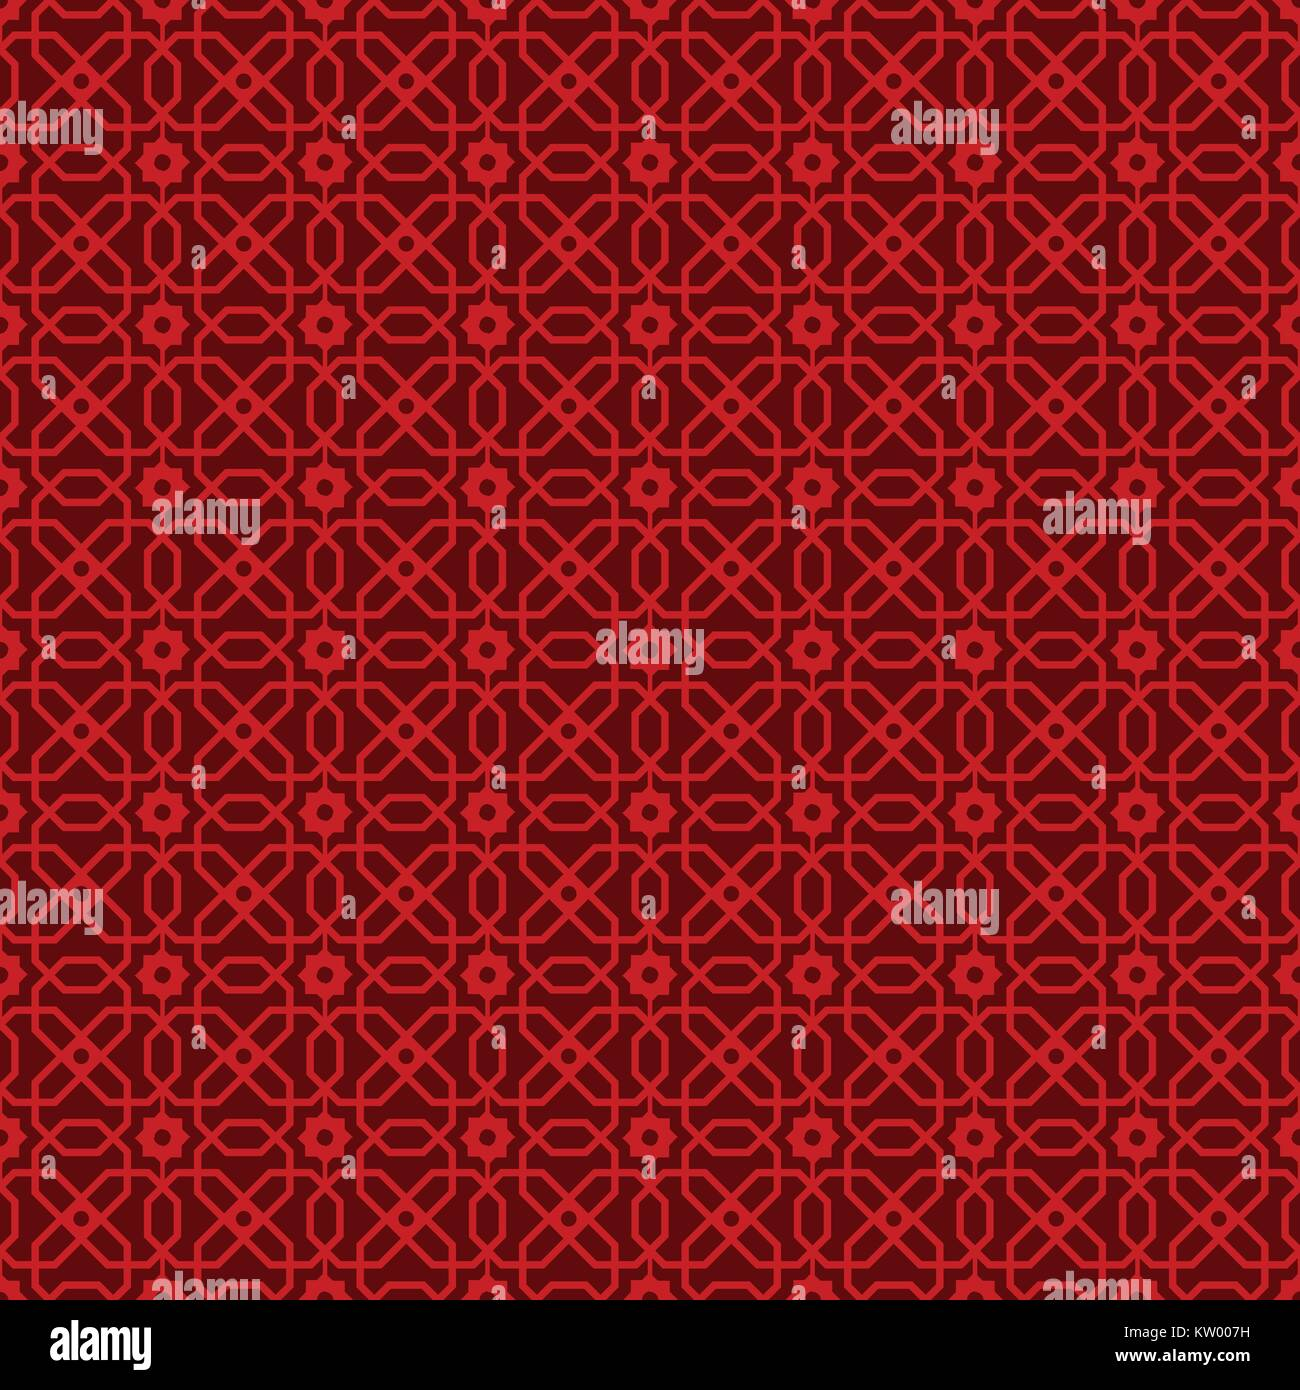 Seamless Vintage Chinese Window Tracery Polygon Star Flower Pattern